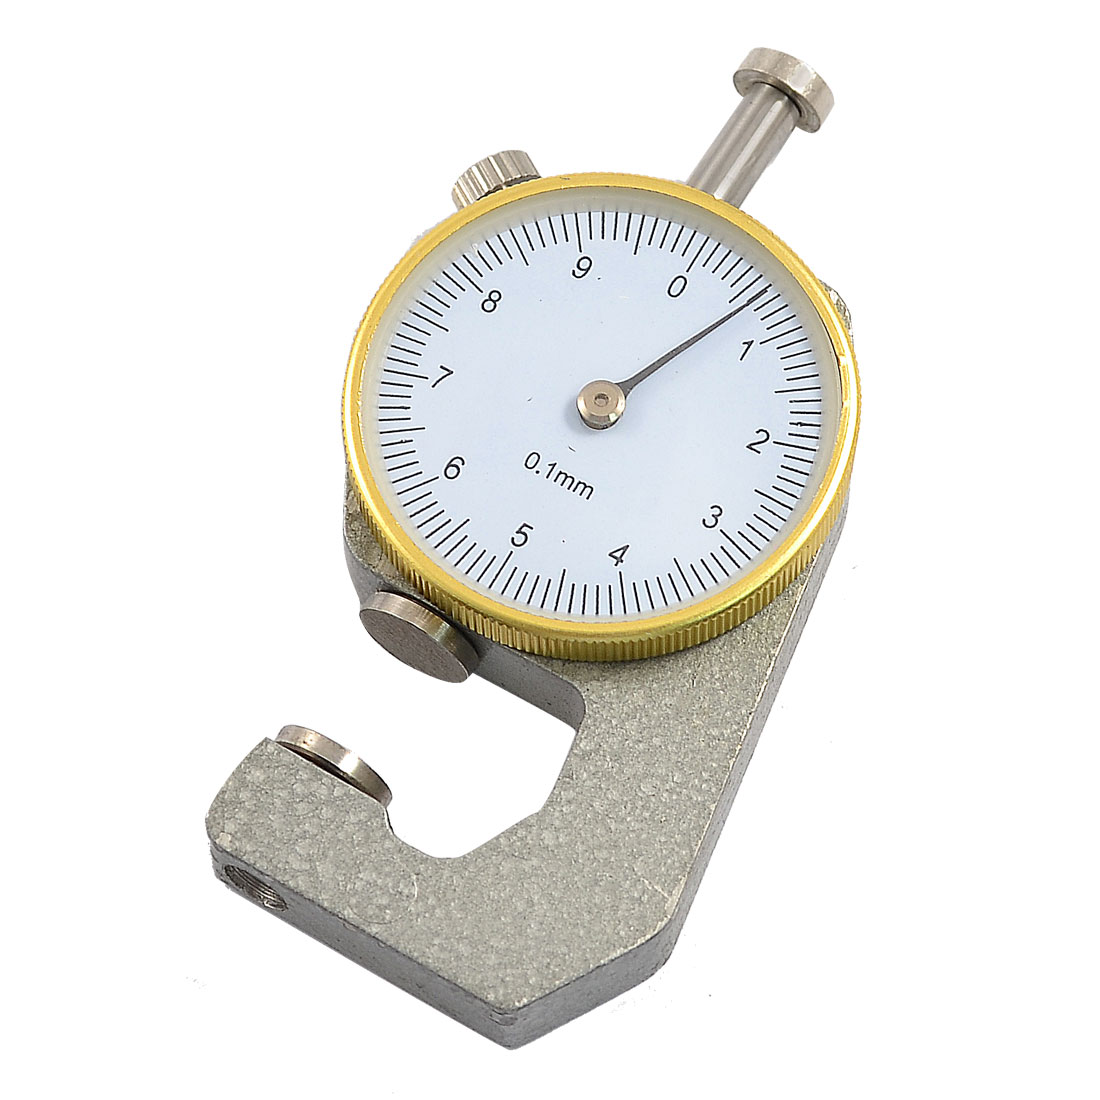 0 to 10mm Dial Indicator Pocket Thickness Gage Gauge Tool